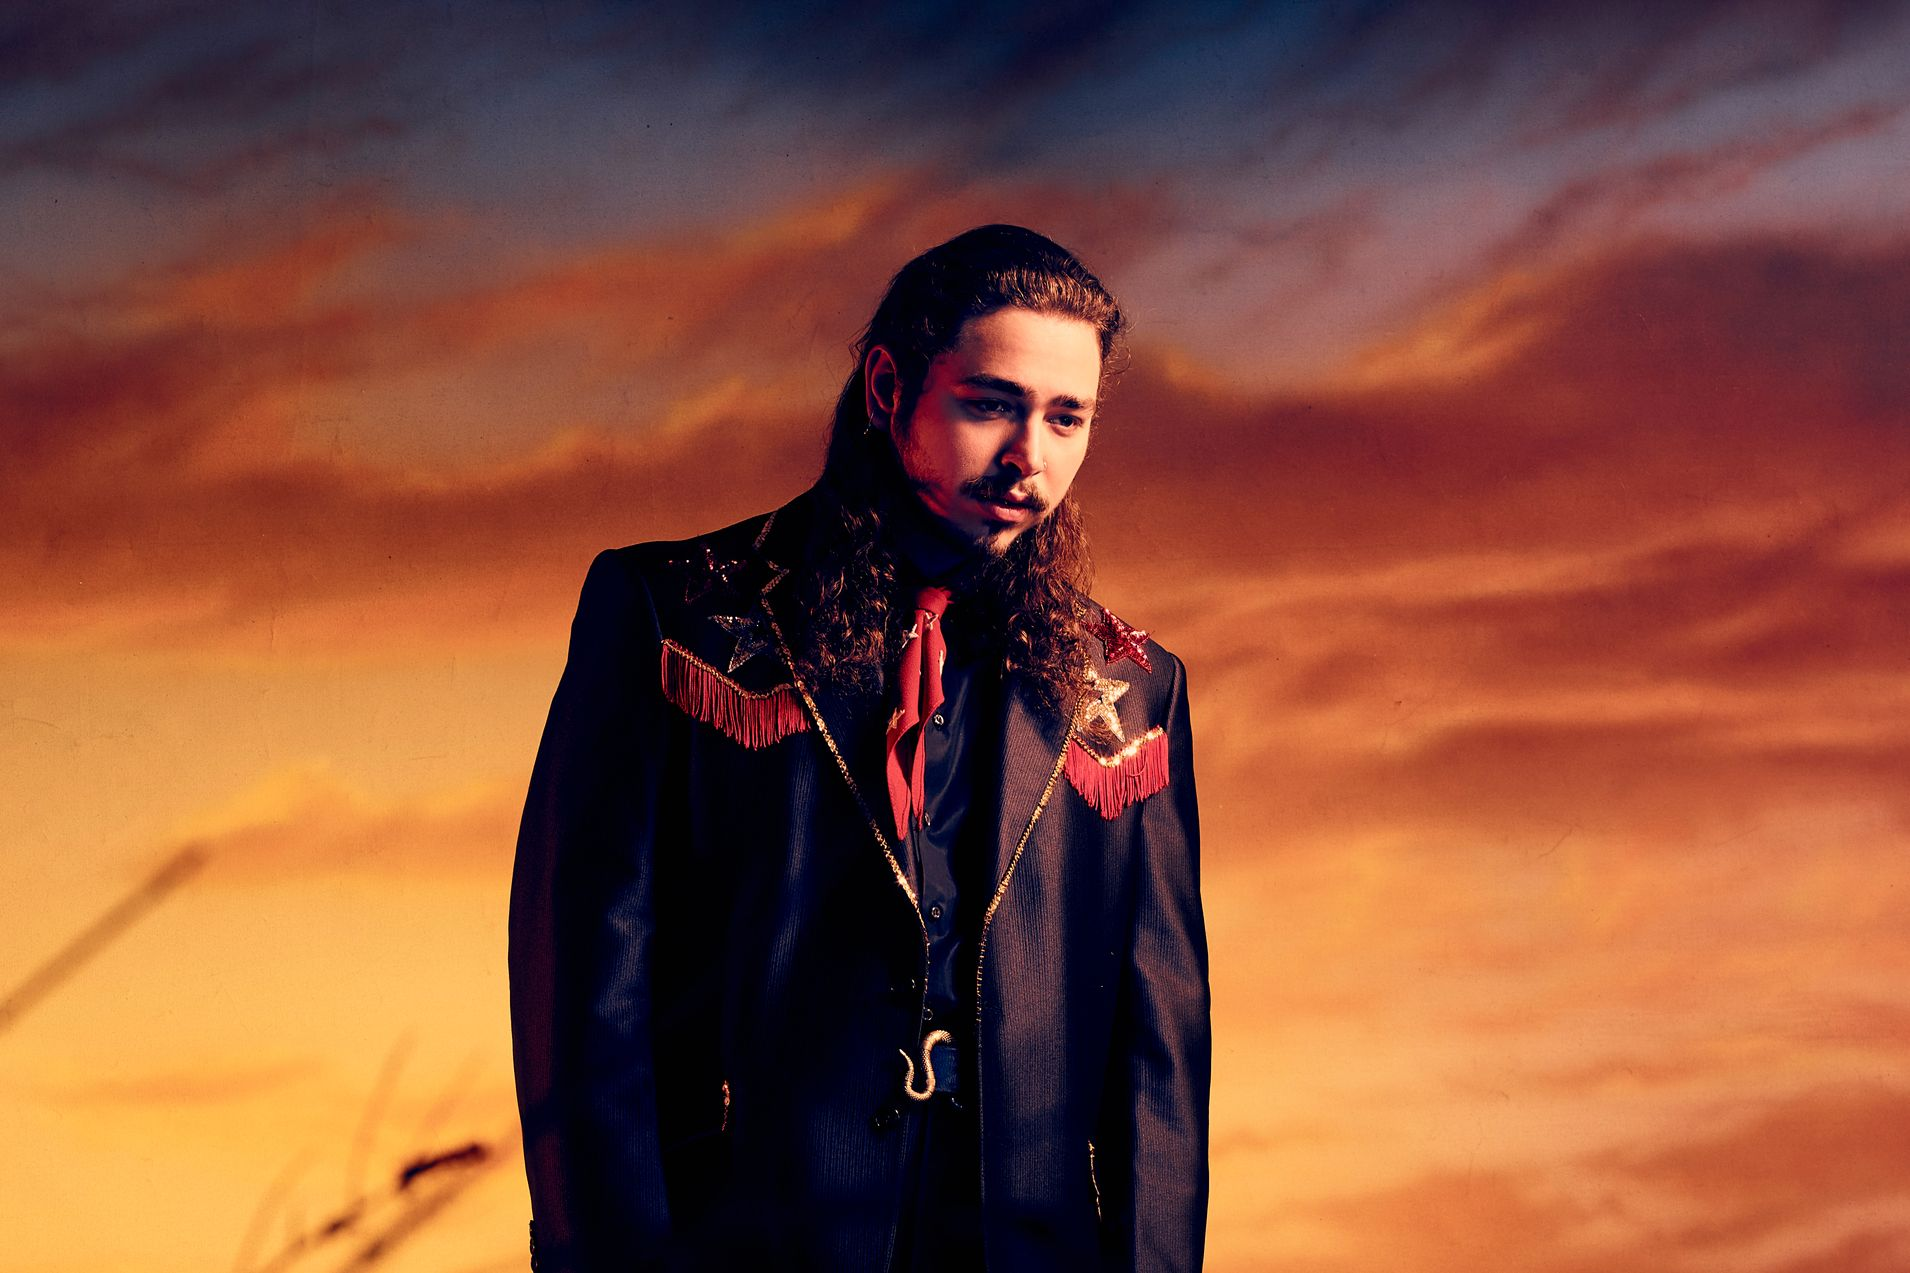 A Biographical Analysis of Post Malone — Sunlighter